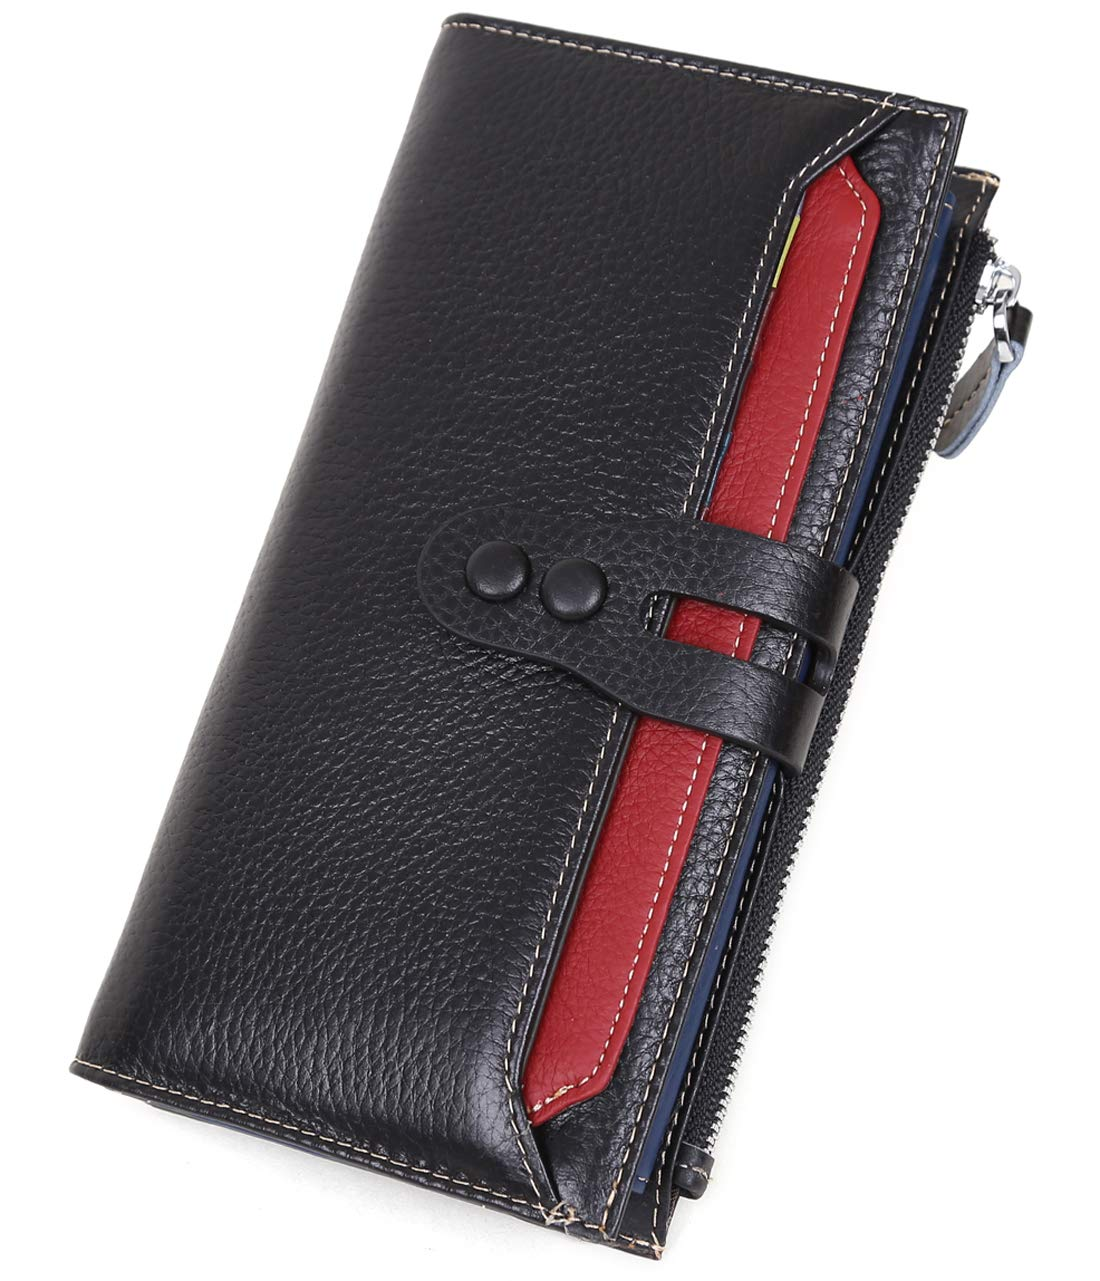 Genuine Leather Wallet for Women,Card Holder Wallet Multi Colored Coin Purse for Organizing Cards (Black)